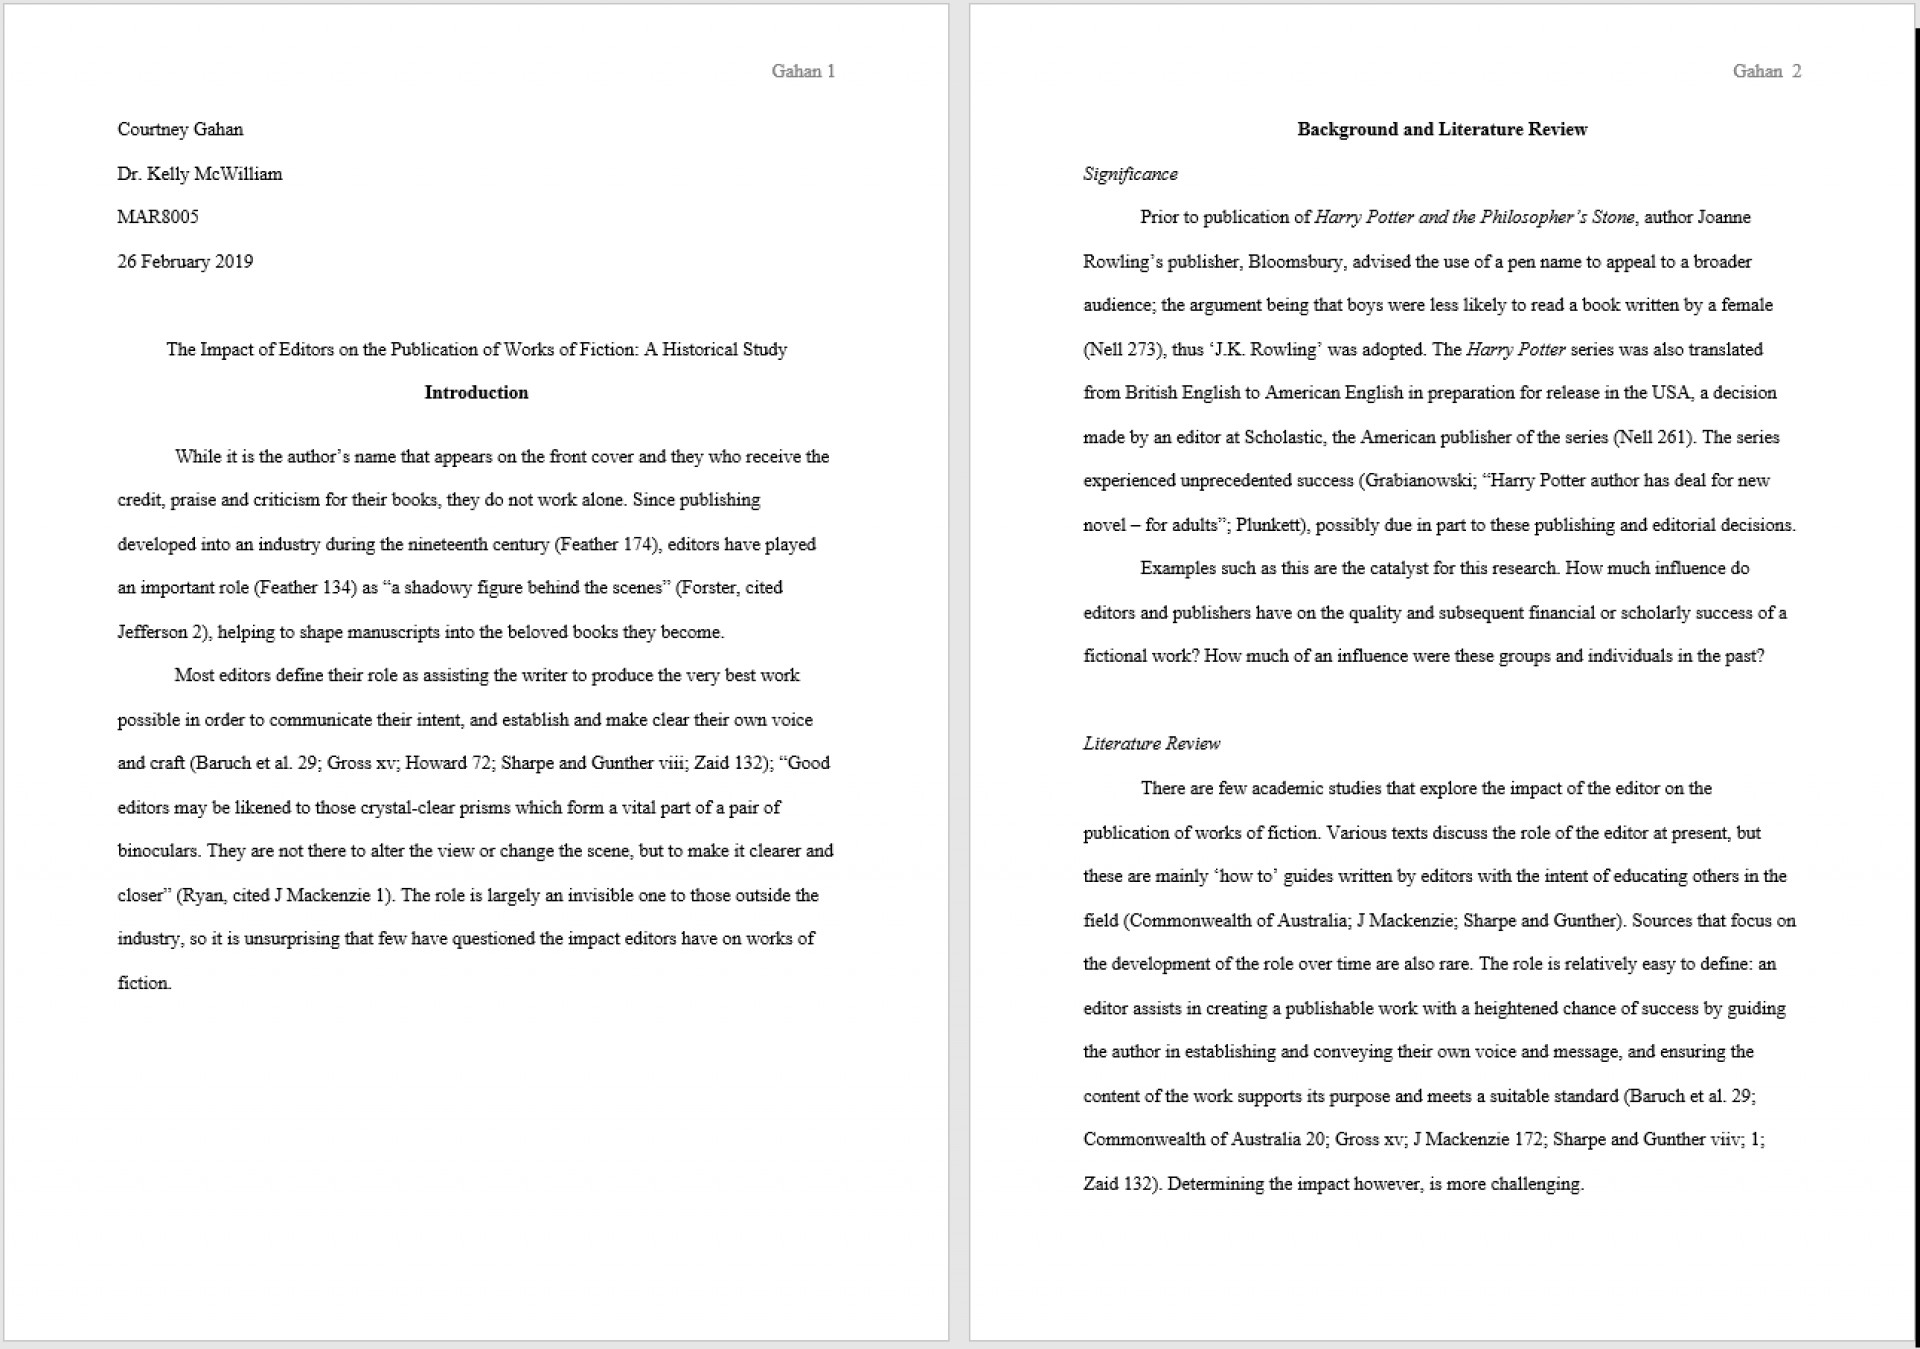 016 Research Paper Citation Rules For Papers Mla Awful 1920